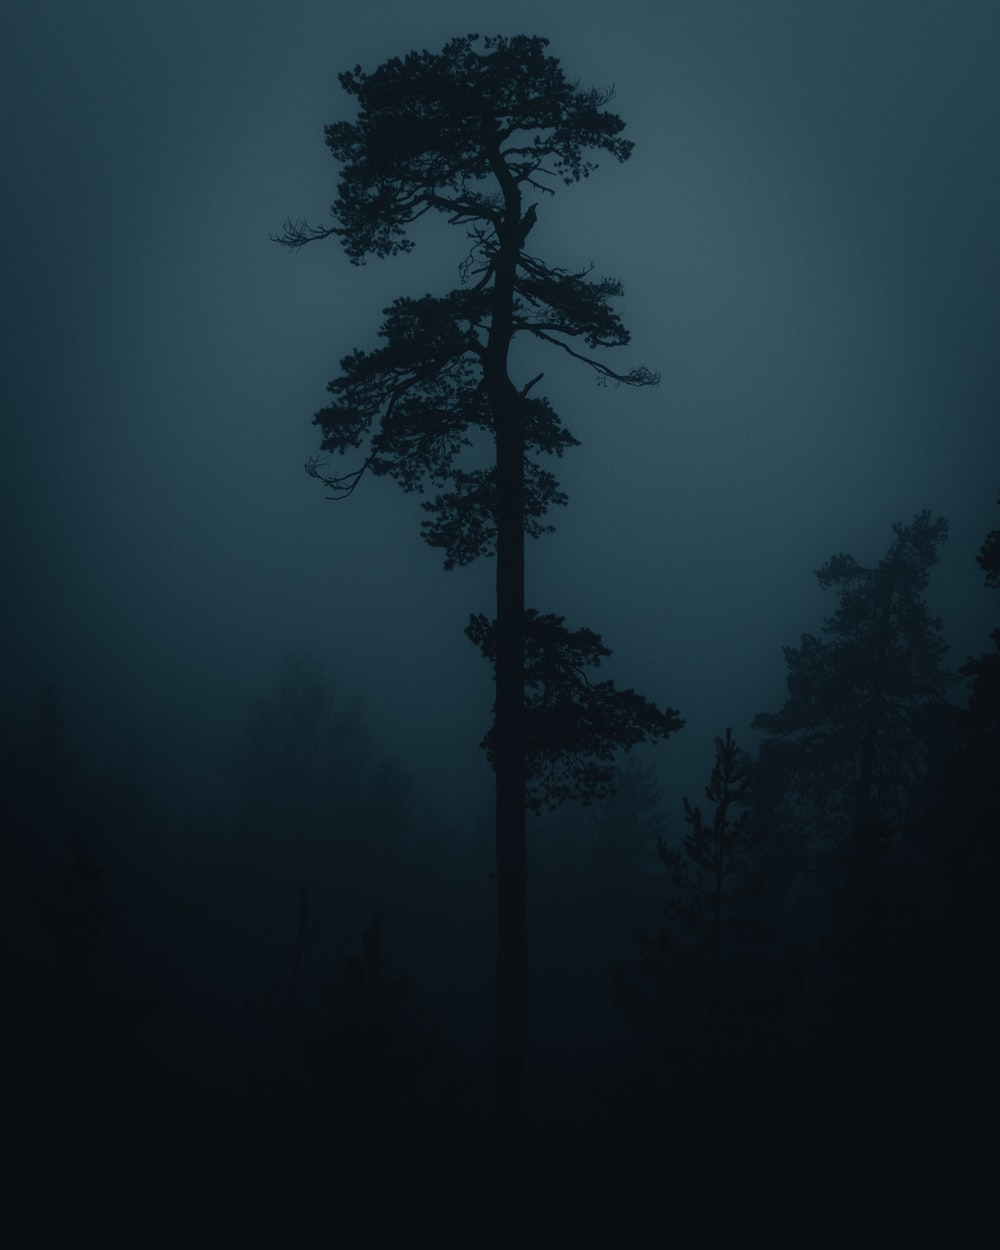 silhouette of tree during night time